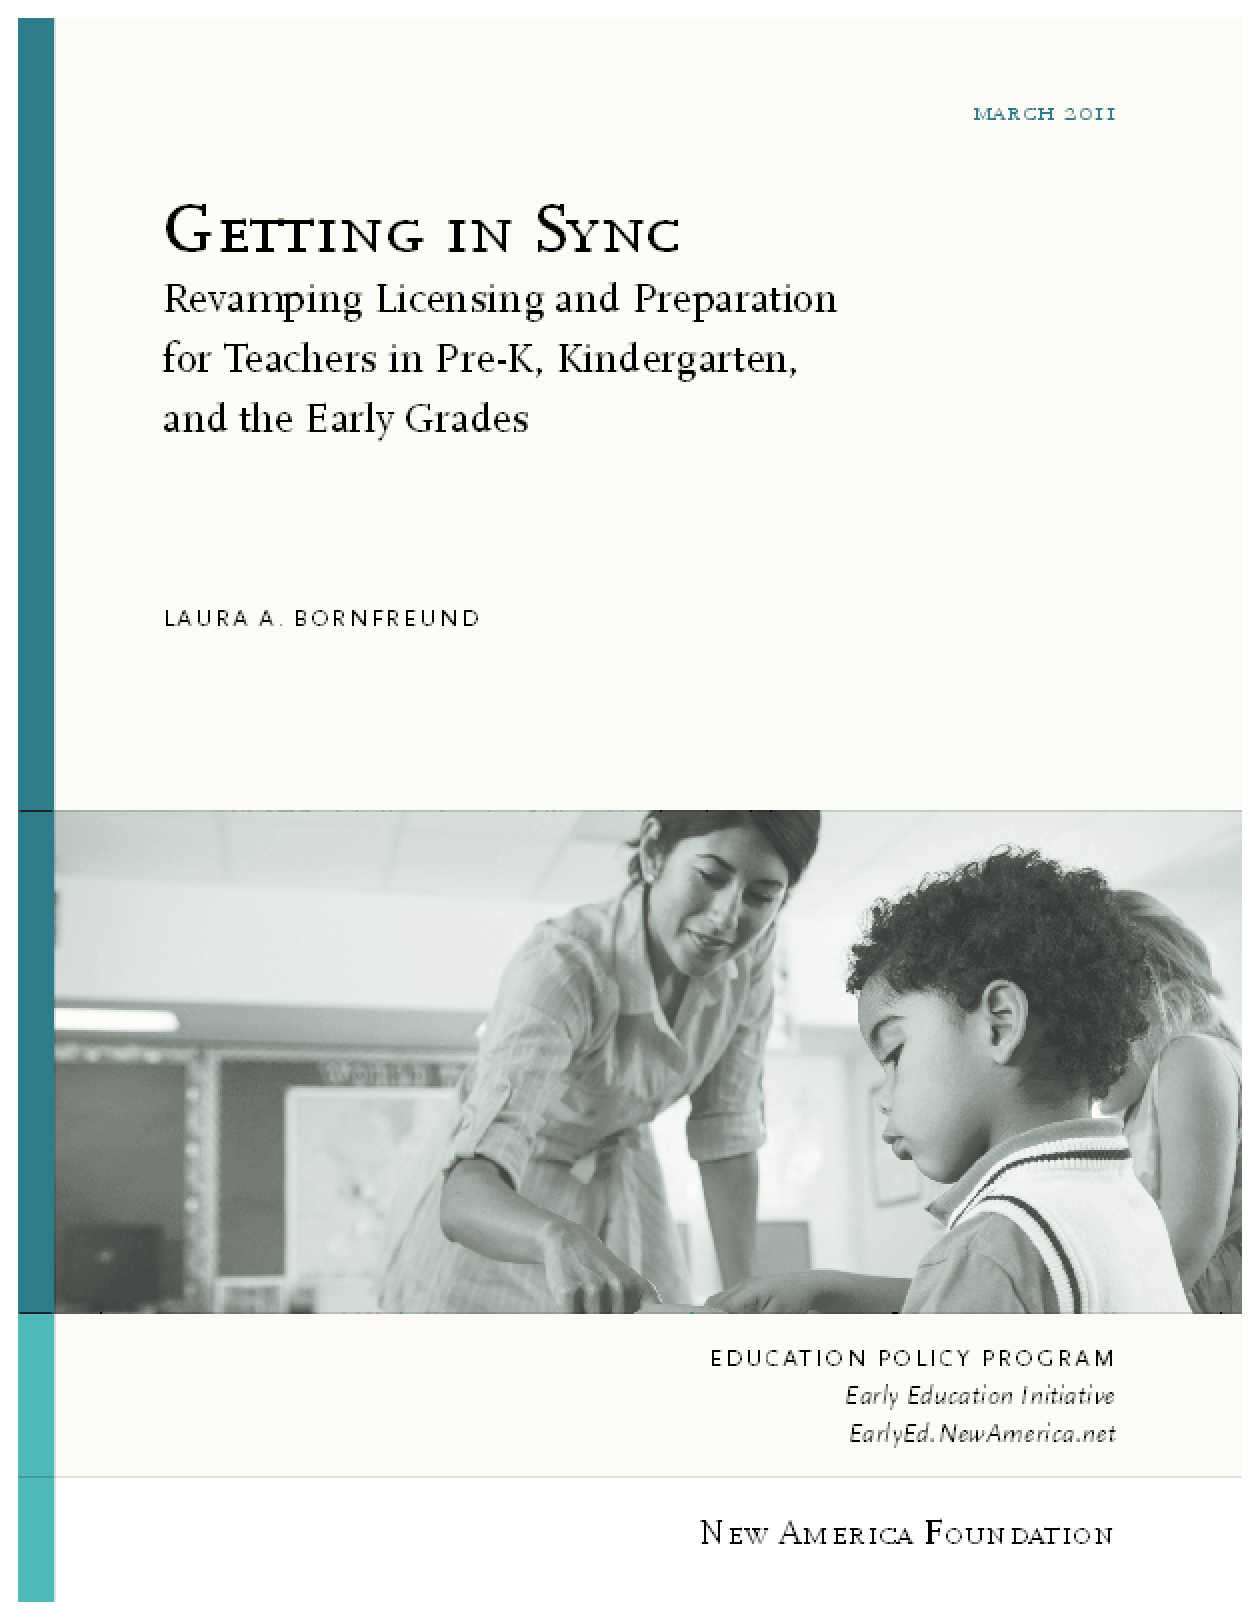 Getting in Sync: Revamping Licensure and Preparation for Teachers in Pre-K, Kindergarten and the Early Grades